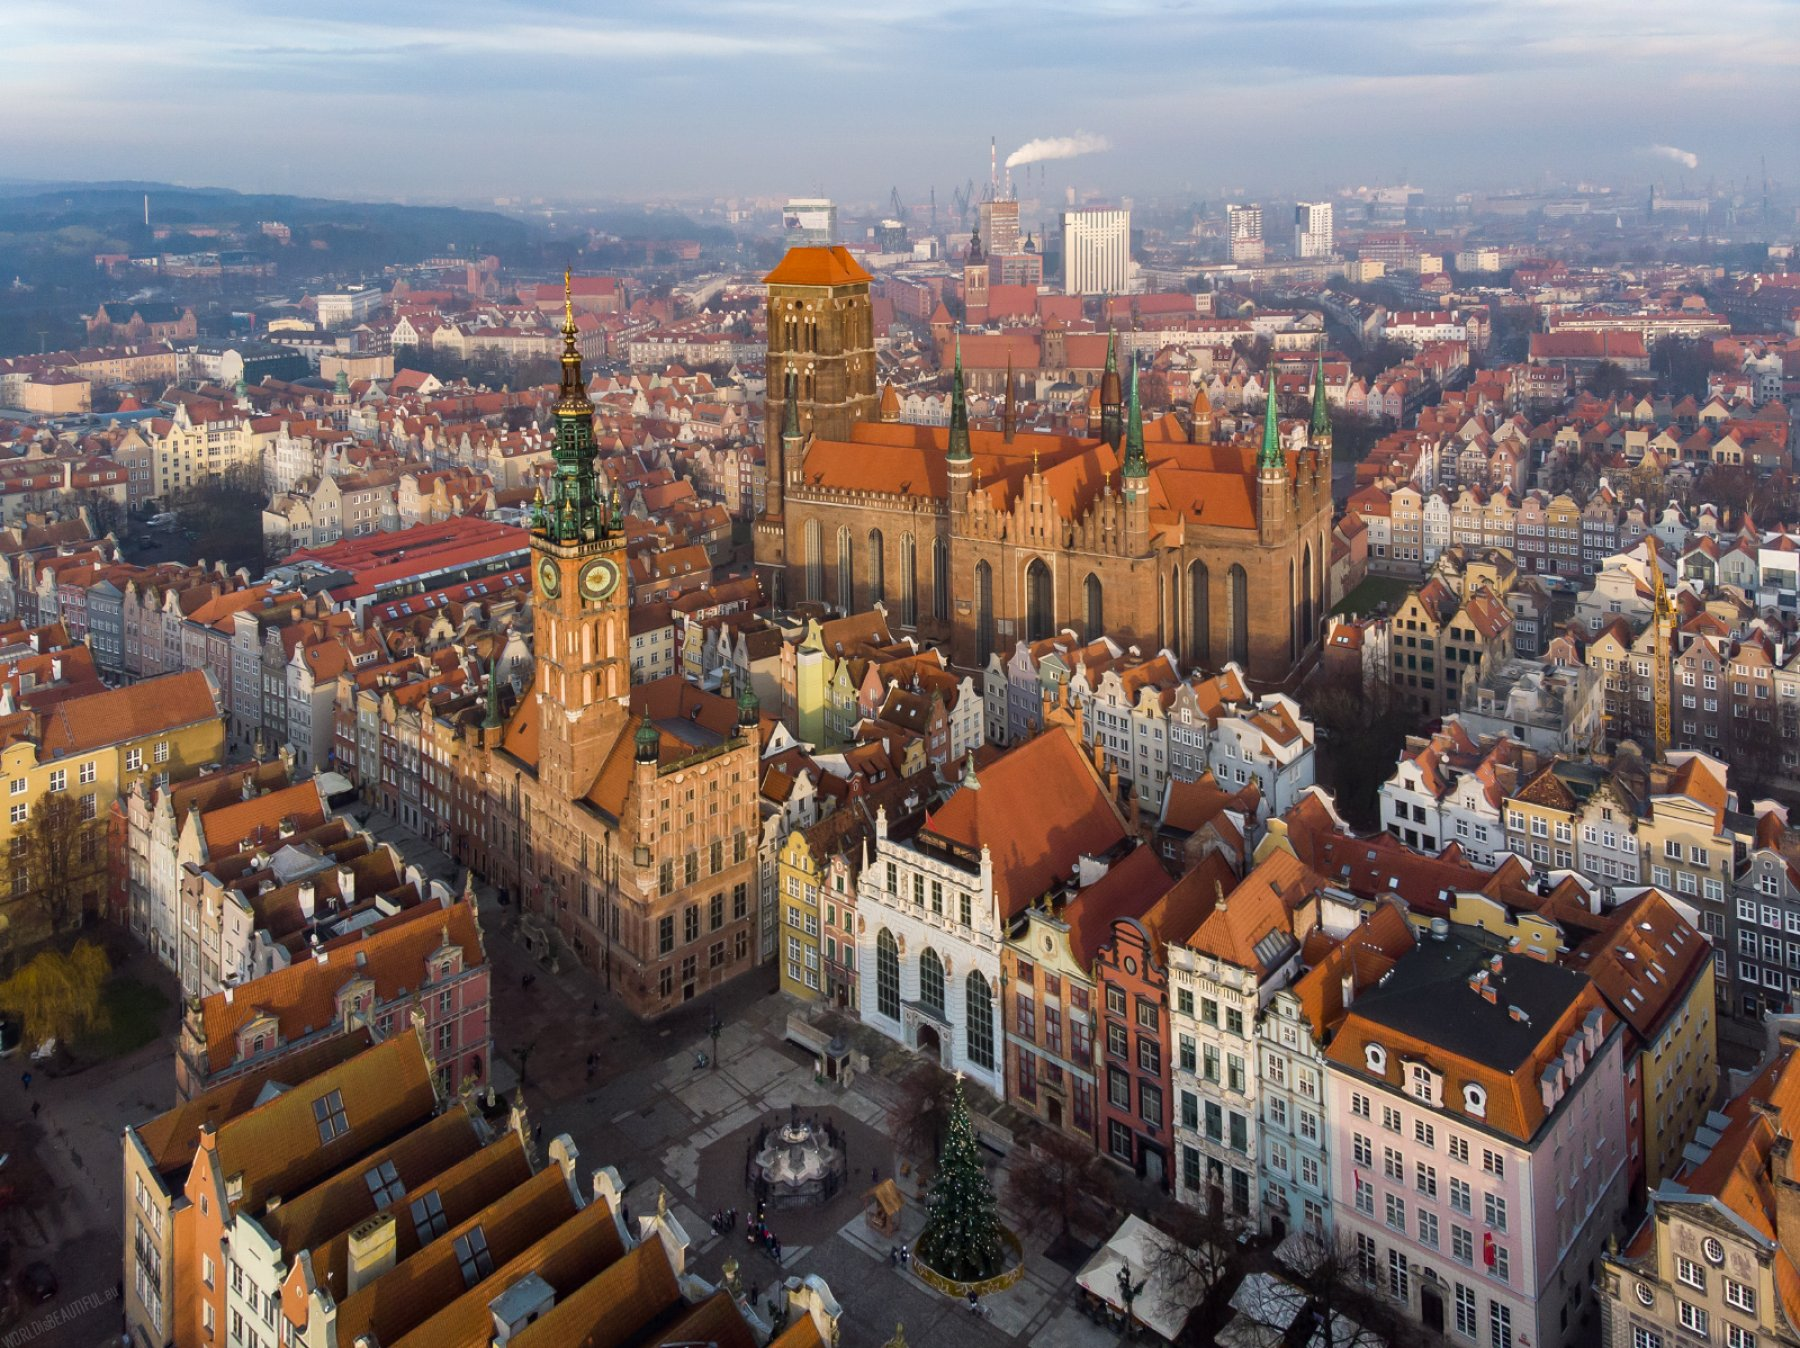 Pictures of Gdansk